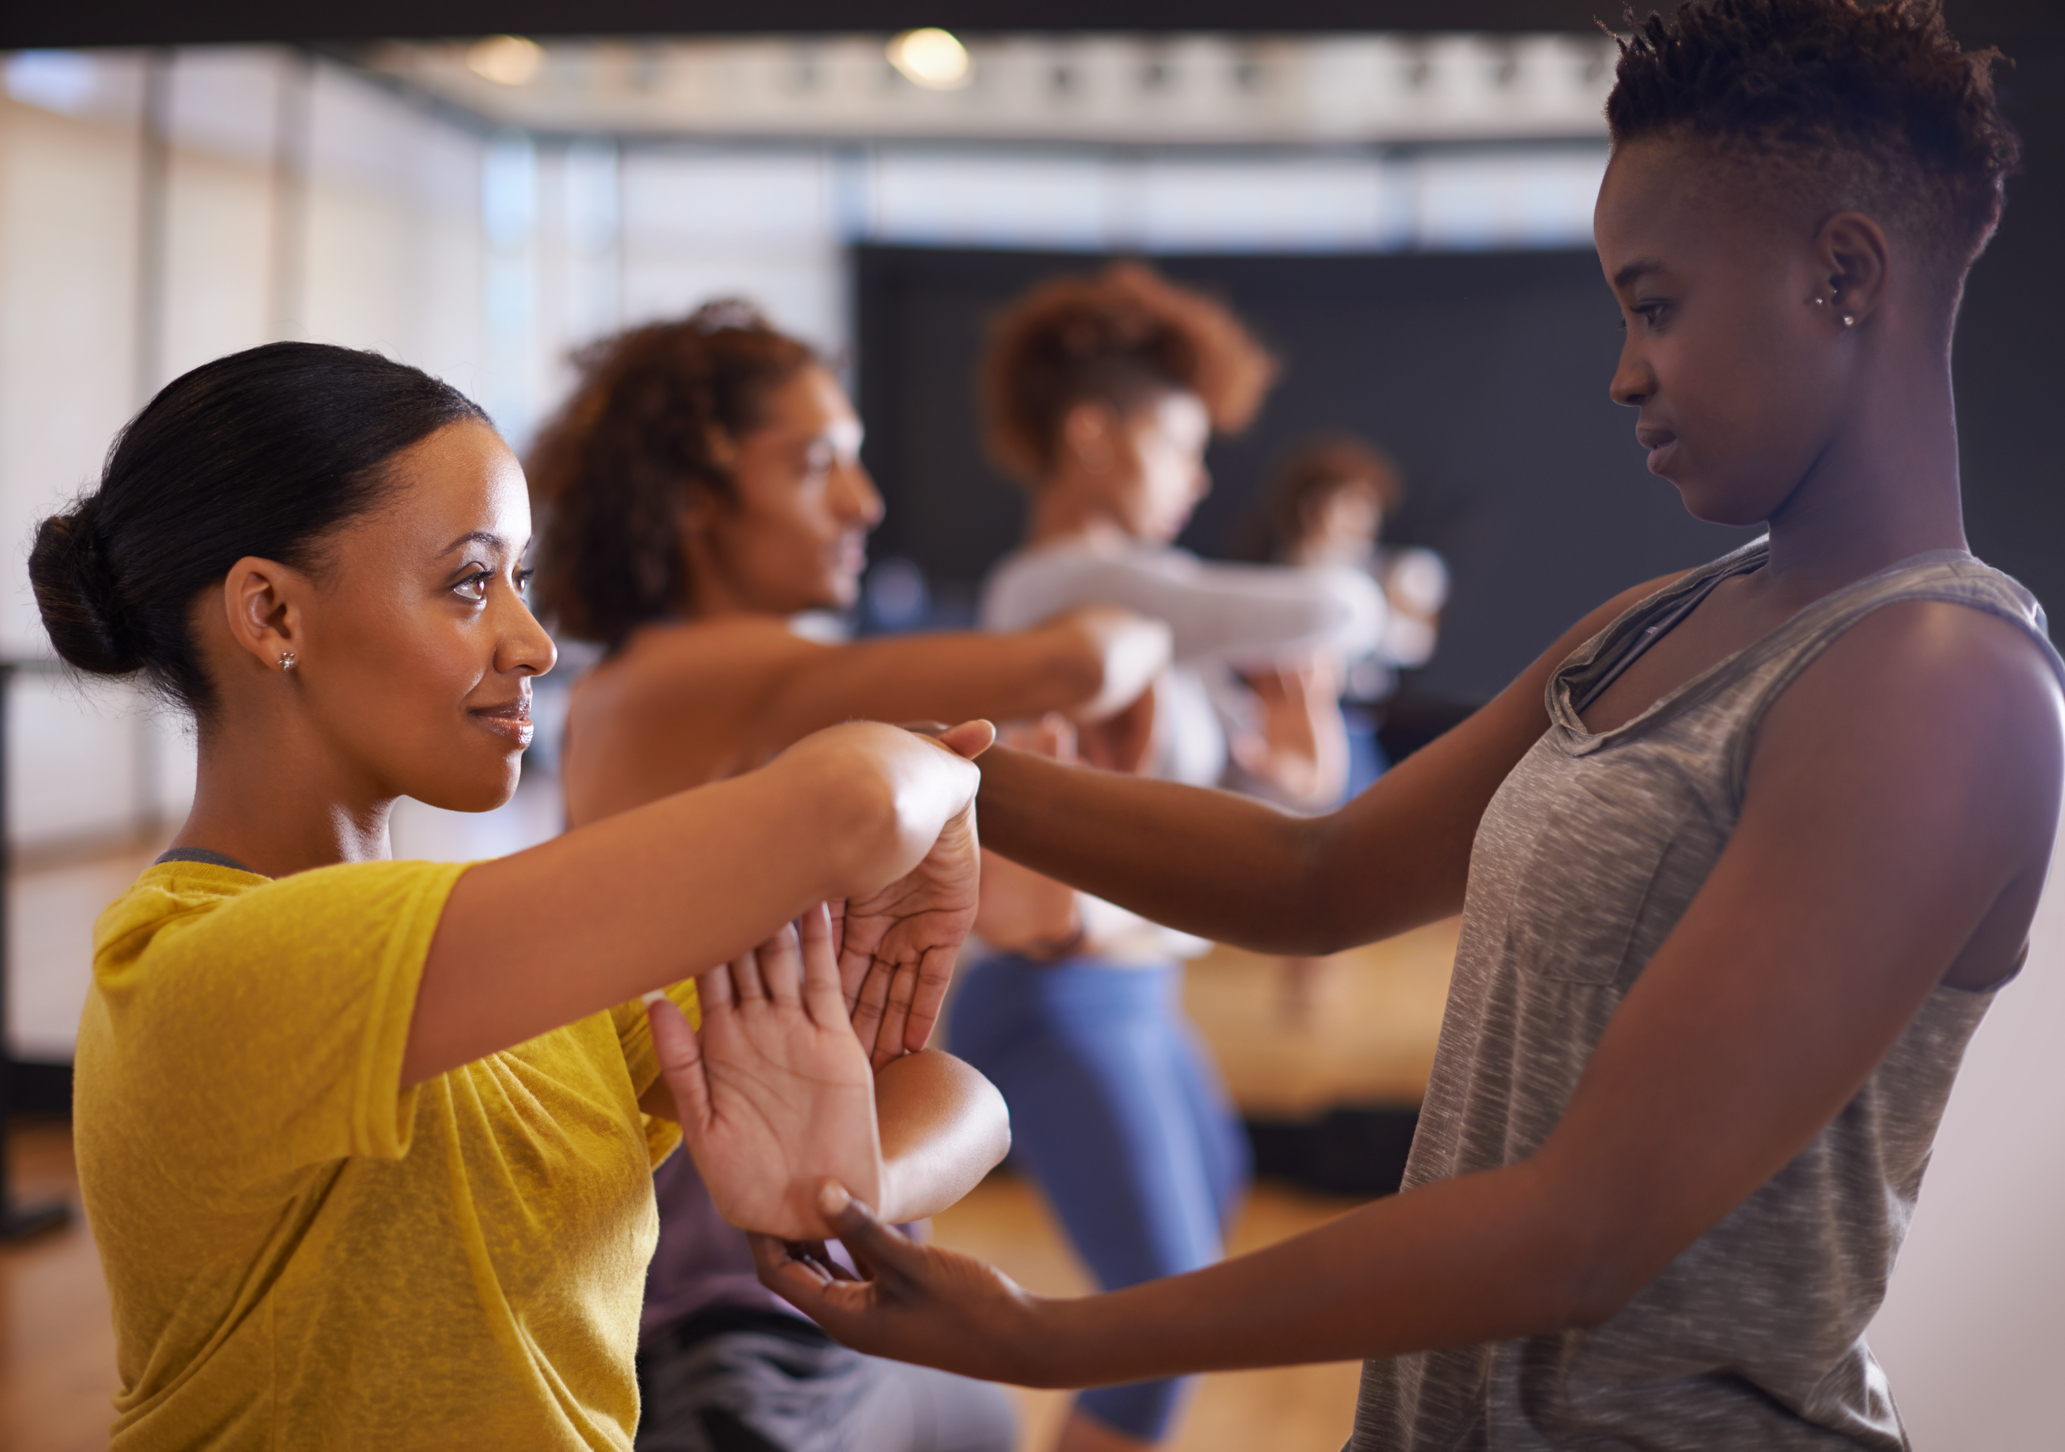 Shot of a group of people practicing in a dance studio